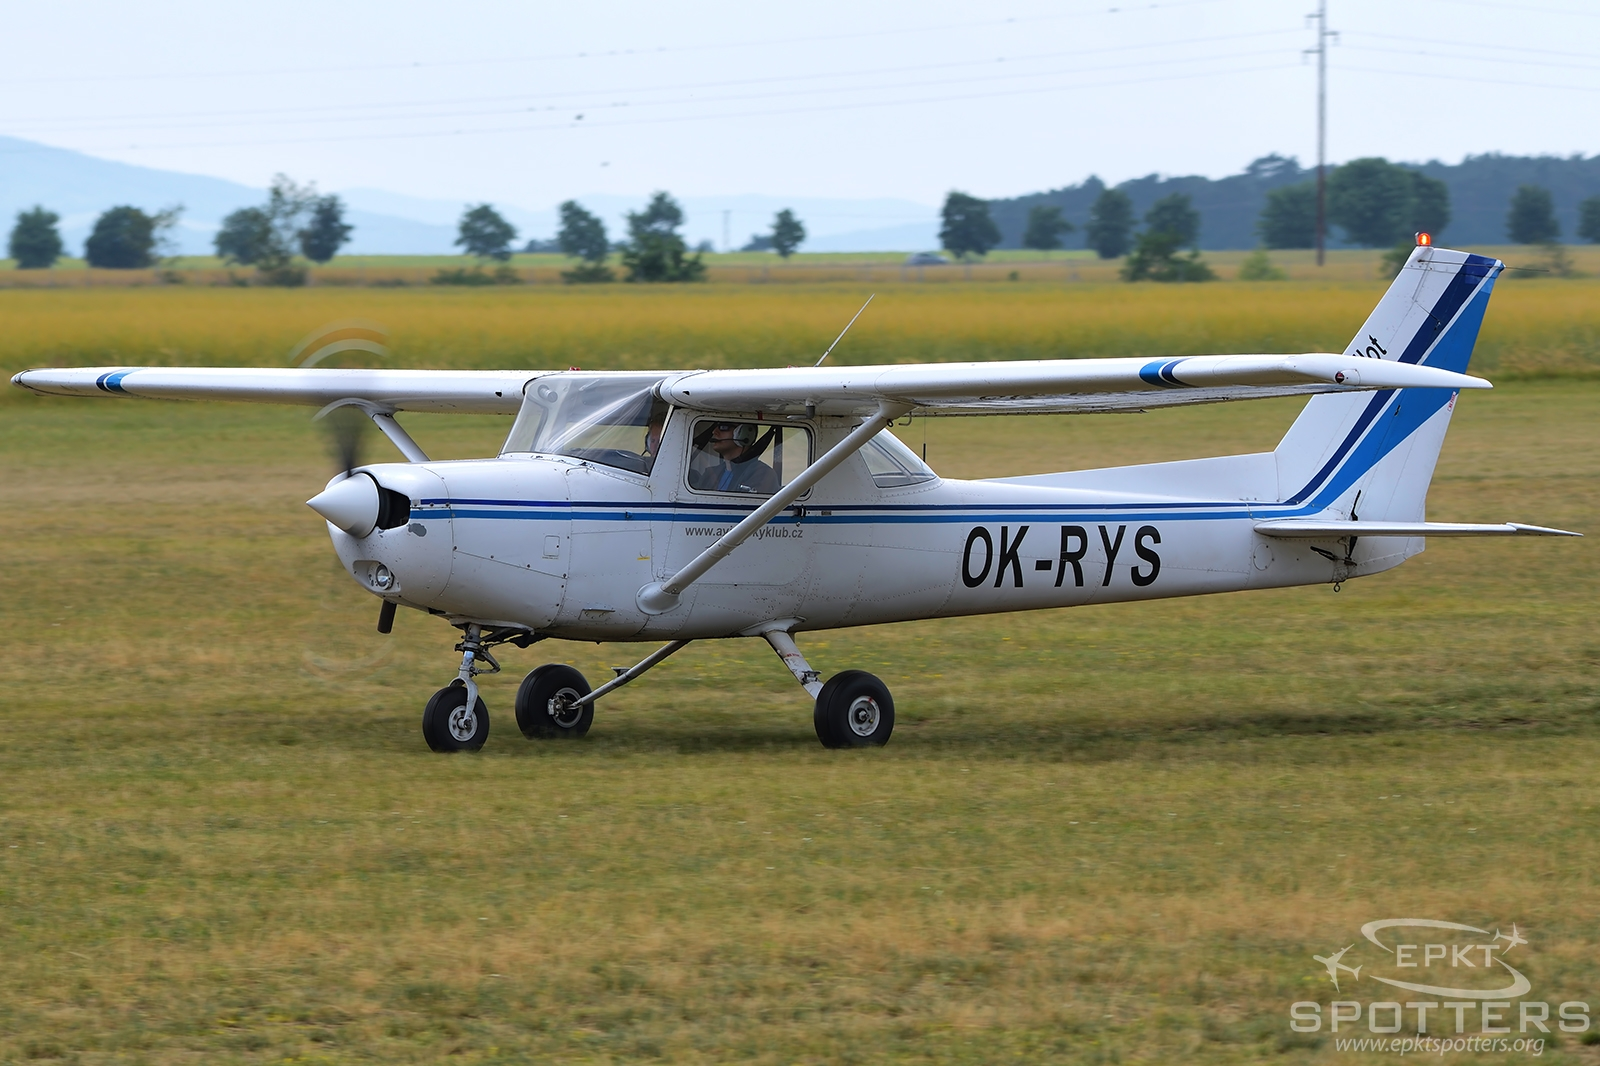 OK-RYS  - Cessna 152  (Aviation Club) / Roudnice - Roudnice Nad Labem Czech Republic [LKRO/]